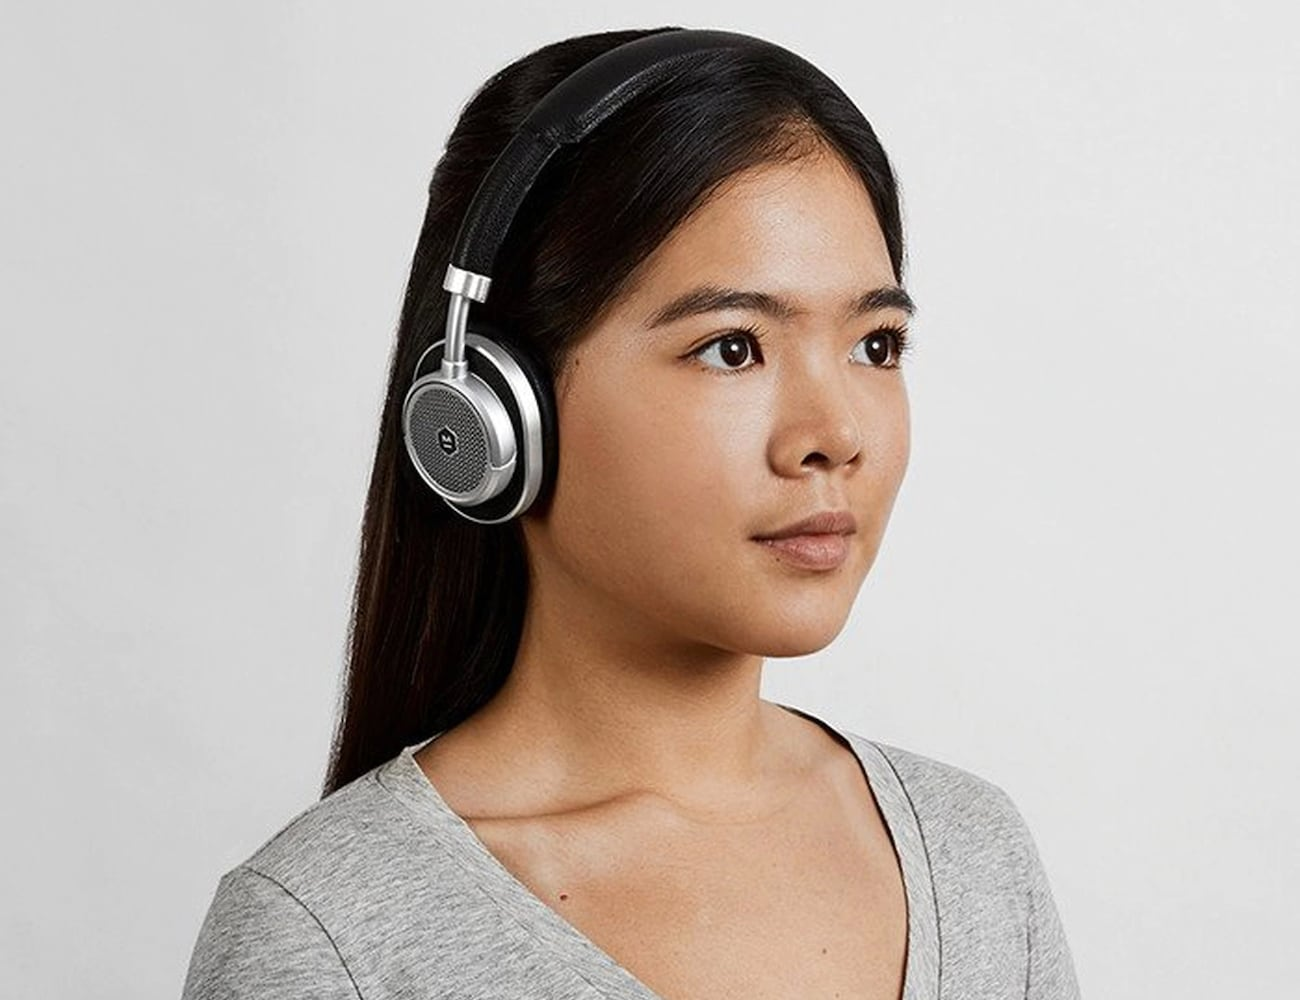 Master & Dynamic MW60 Foldable Wireless Over-Ear Headphones have a 16-hour battery life